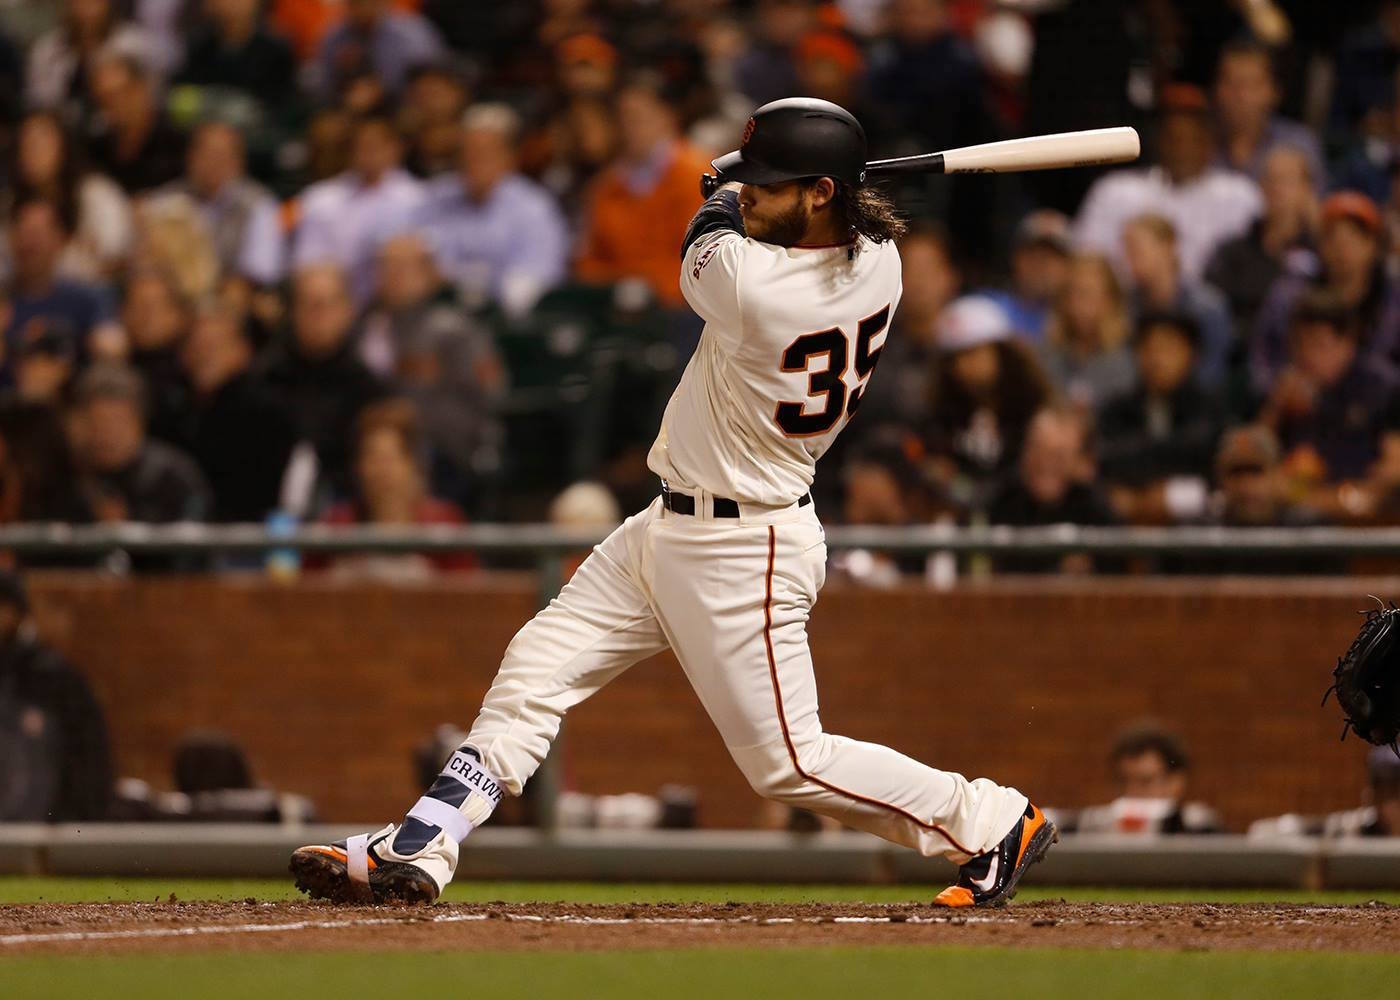 The Gentle Giant: Catching Up With Brandon Crawford